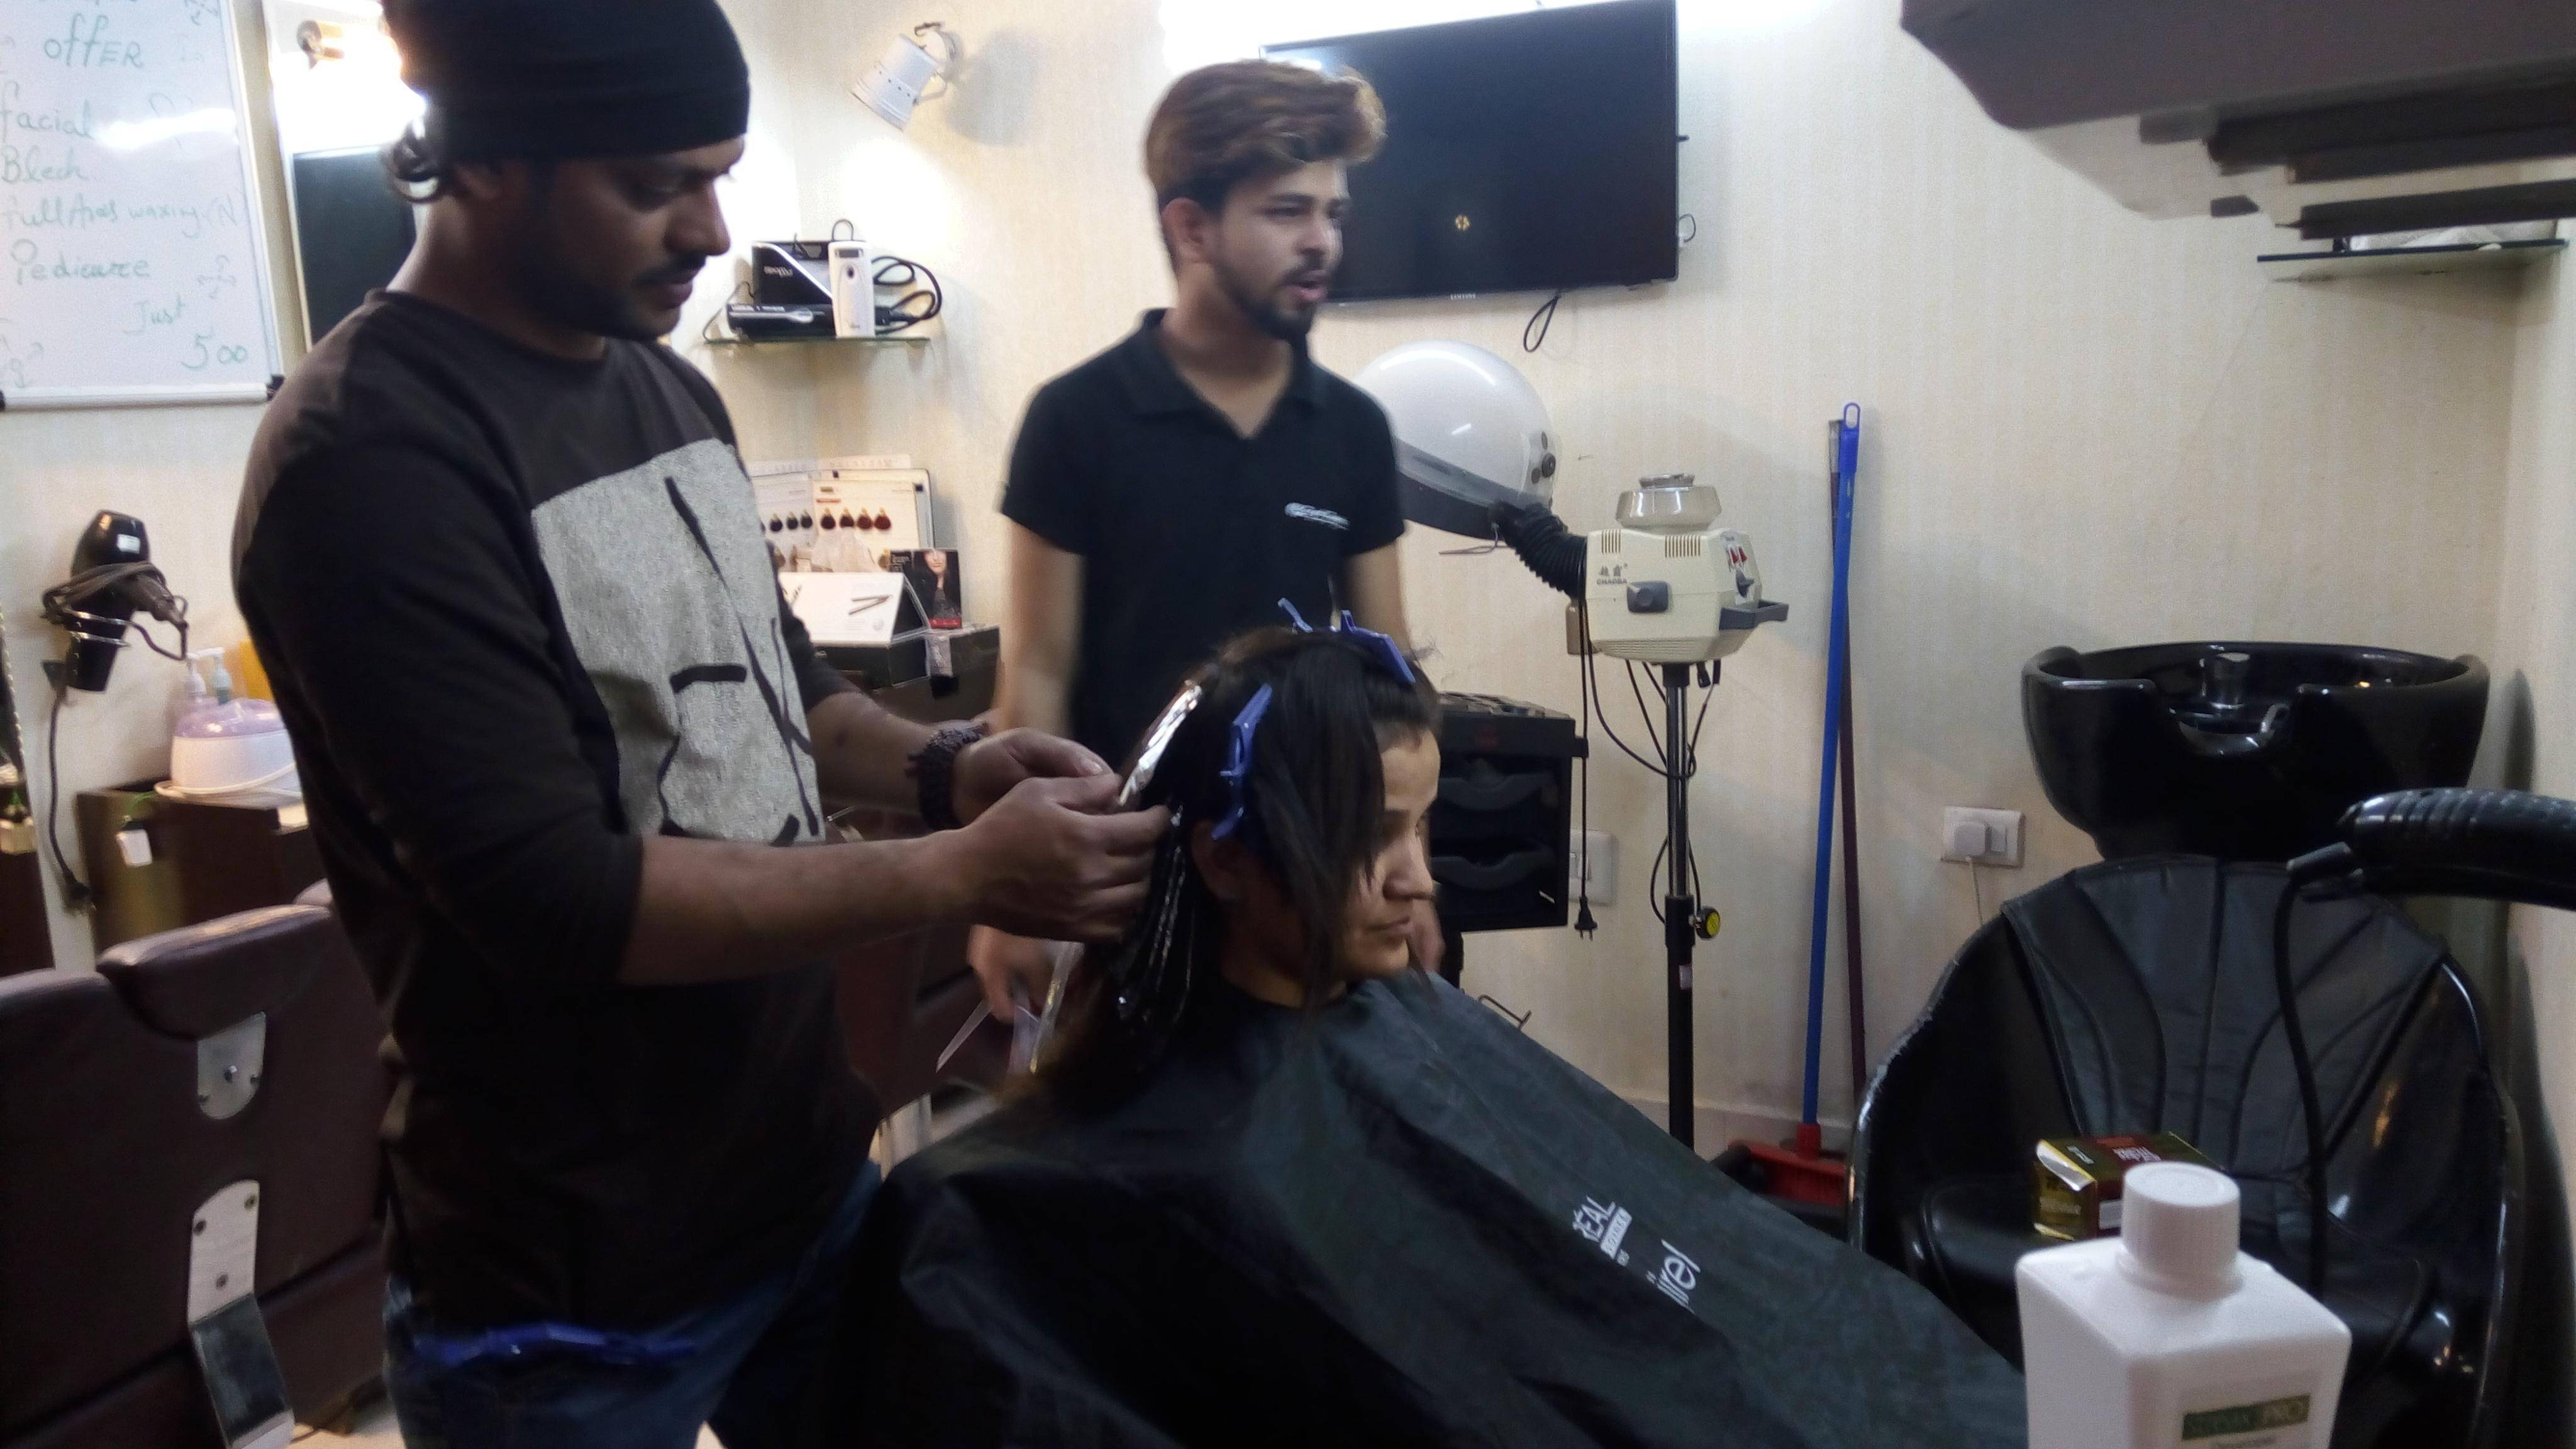 Good Looks Salon, Janakpuri - Women Beauty Parlours In Delhi - Justdial with regard to Best Haircut Salon In Janakpuri